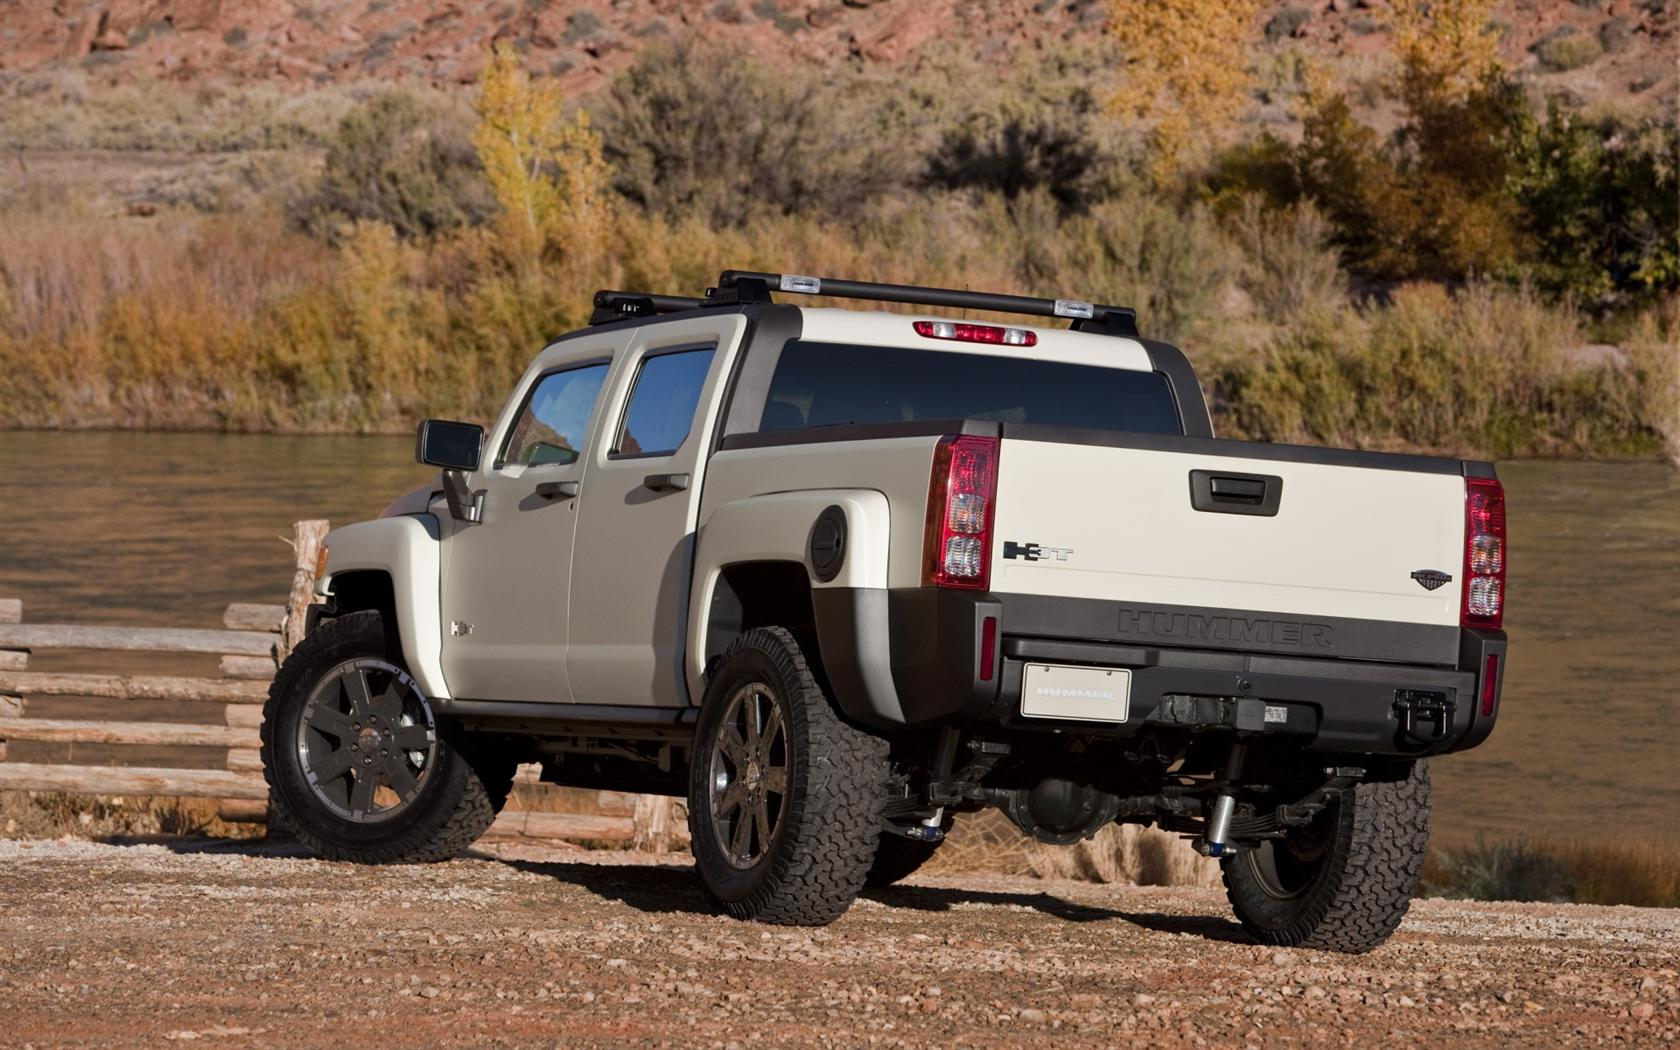 2010 hummer hx image collections hd cars wallpaper 2003 hummer h3t concept gallery hd cars wallpaper 2010 hummer h3t information and photos zombiedrive 2010 vanachro Gallery